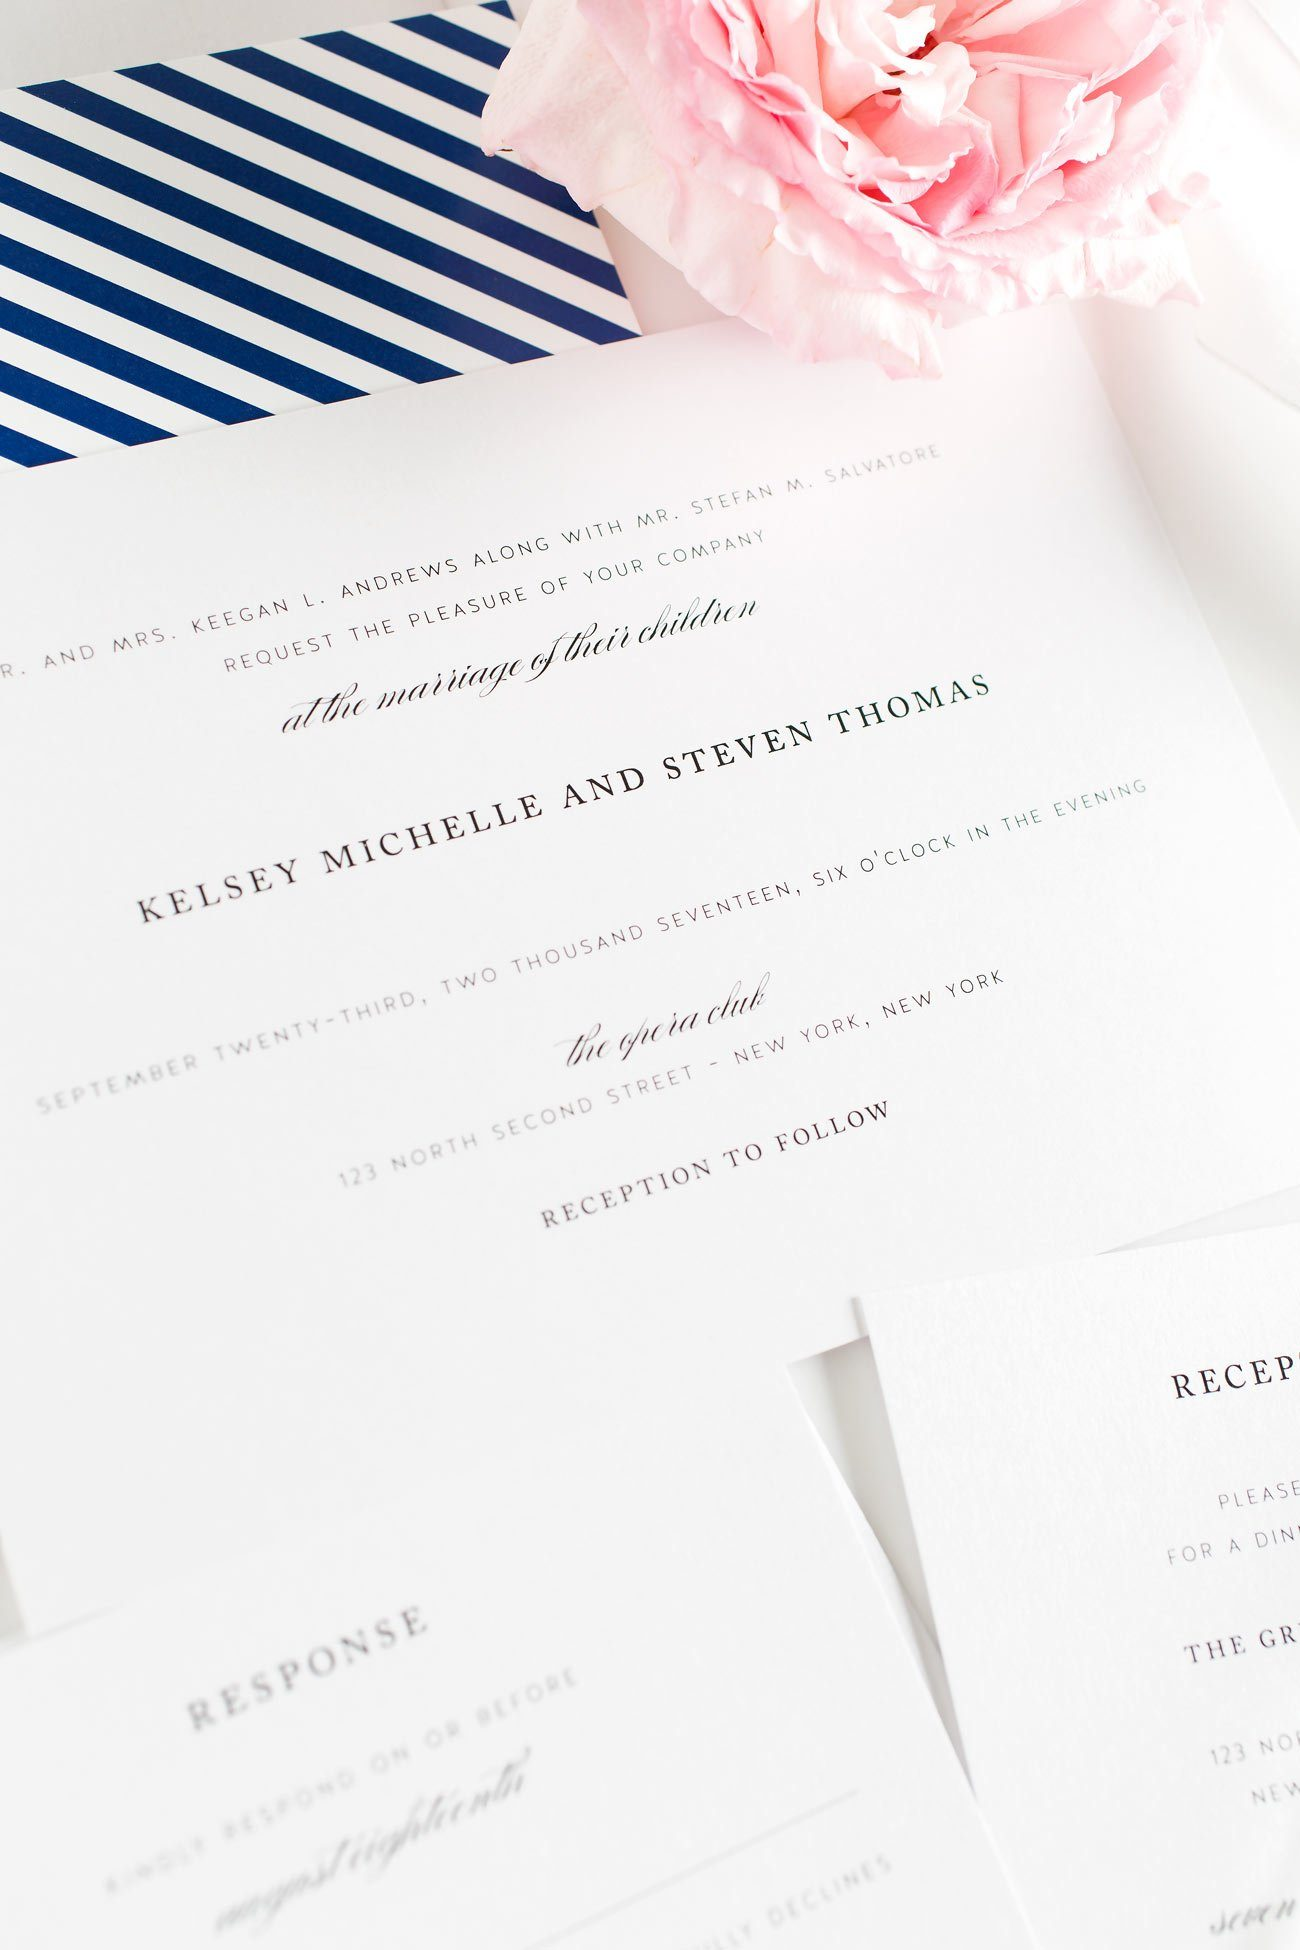 Classic Wedding Invitations in Navy Blue